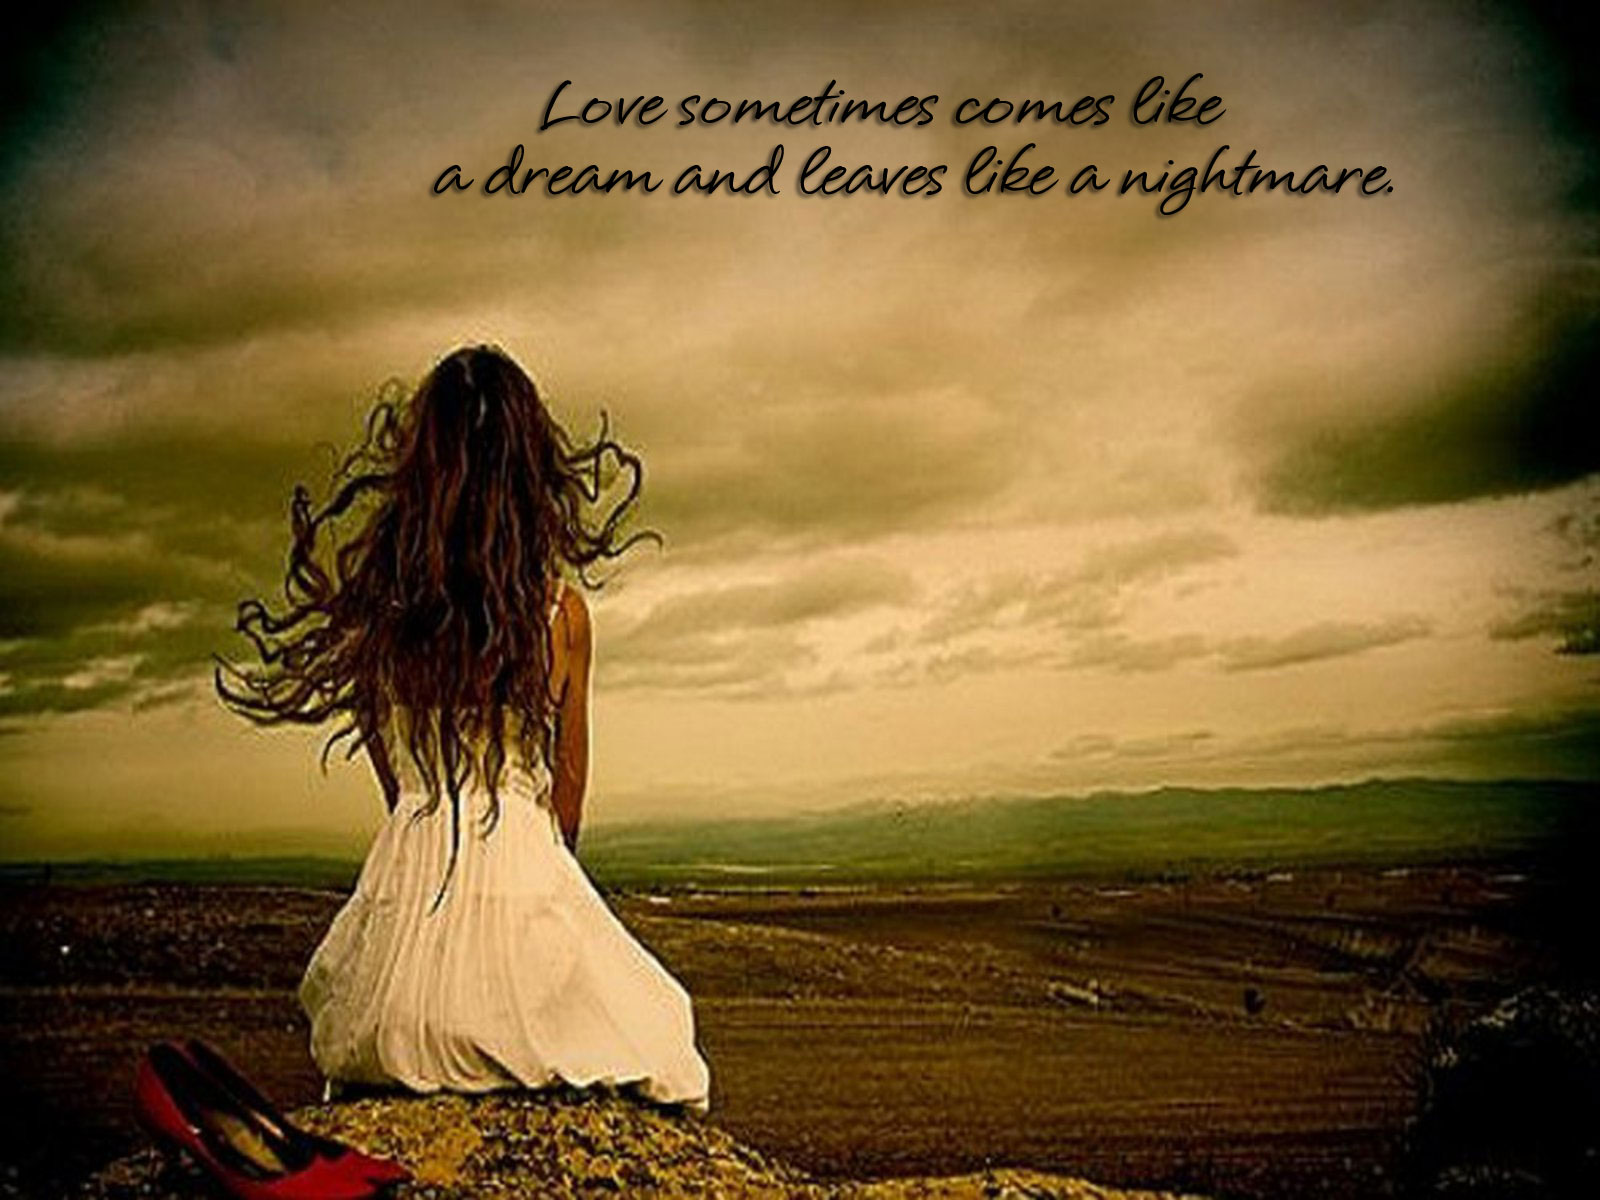 Love sometimes comes like a dream